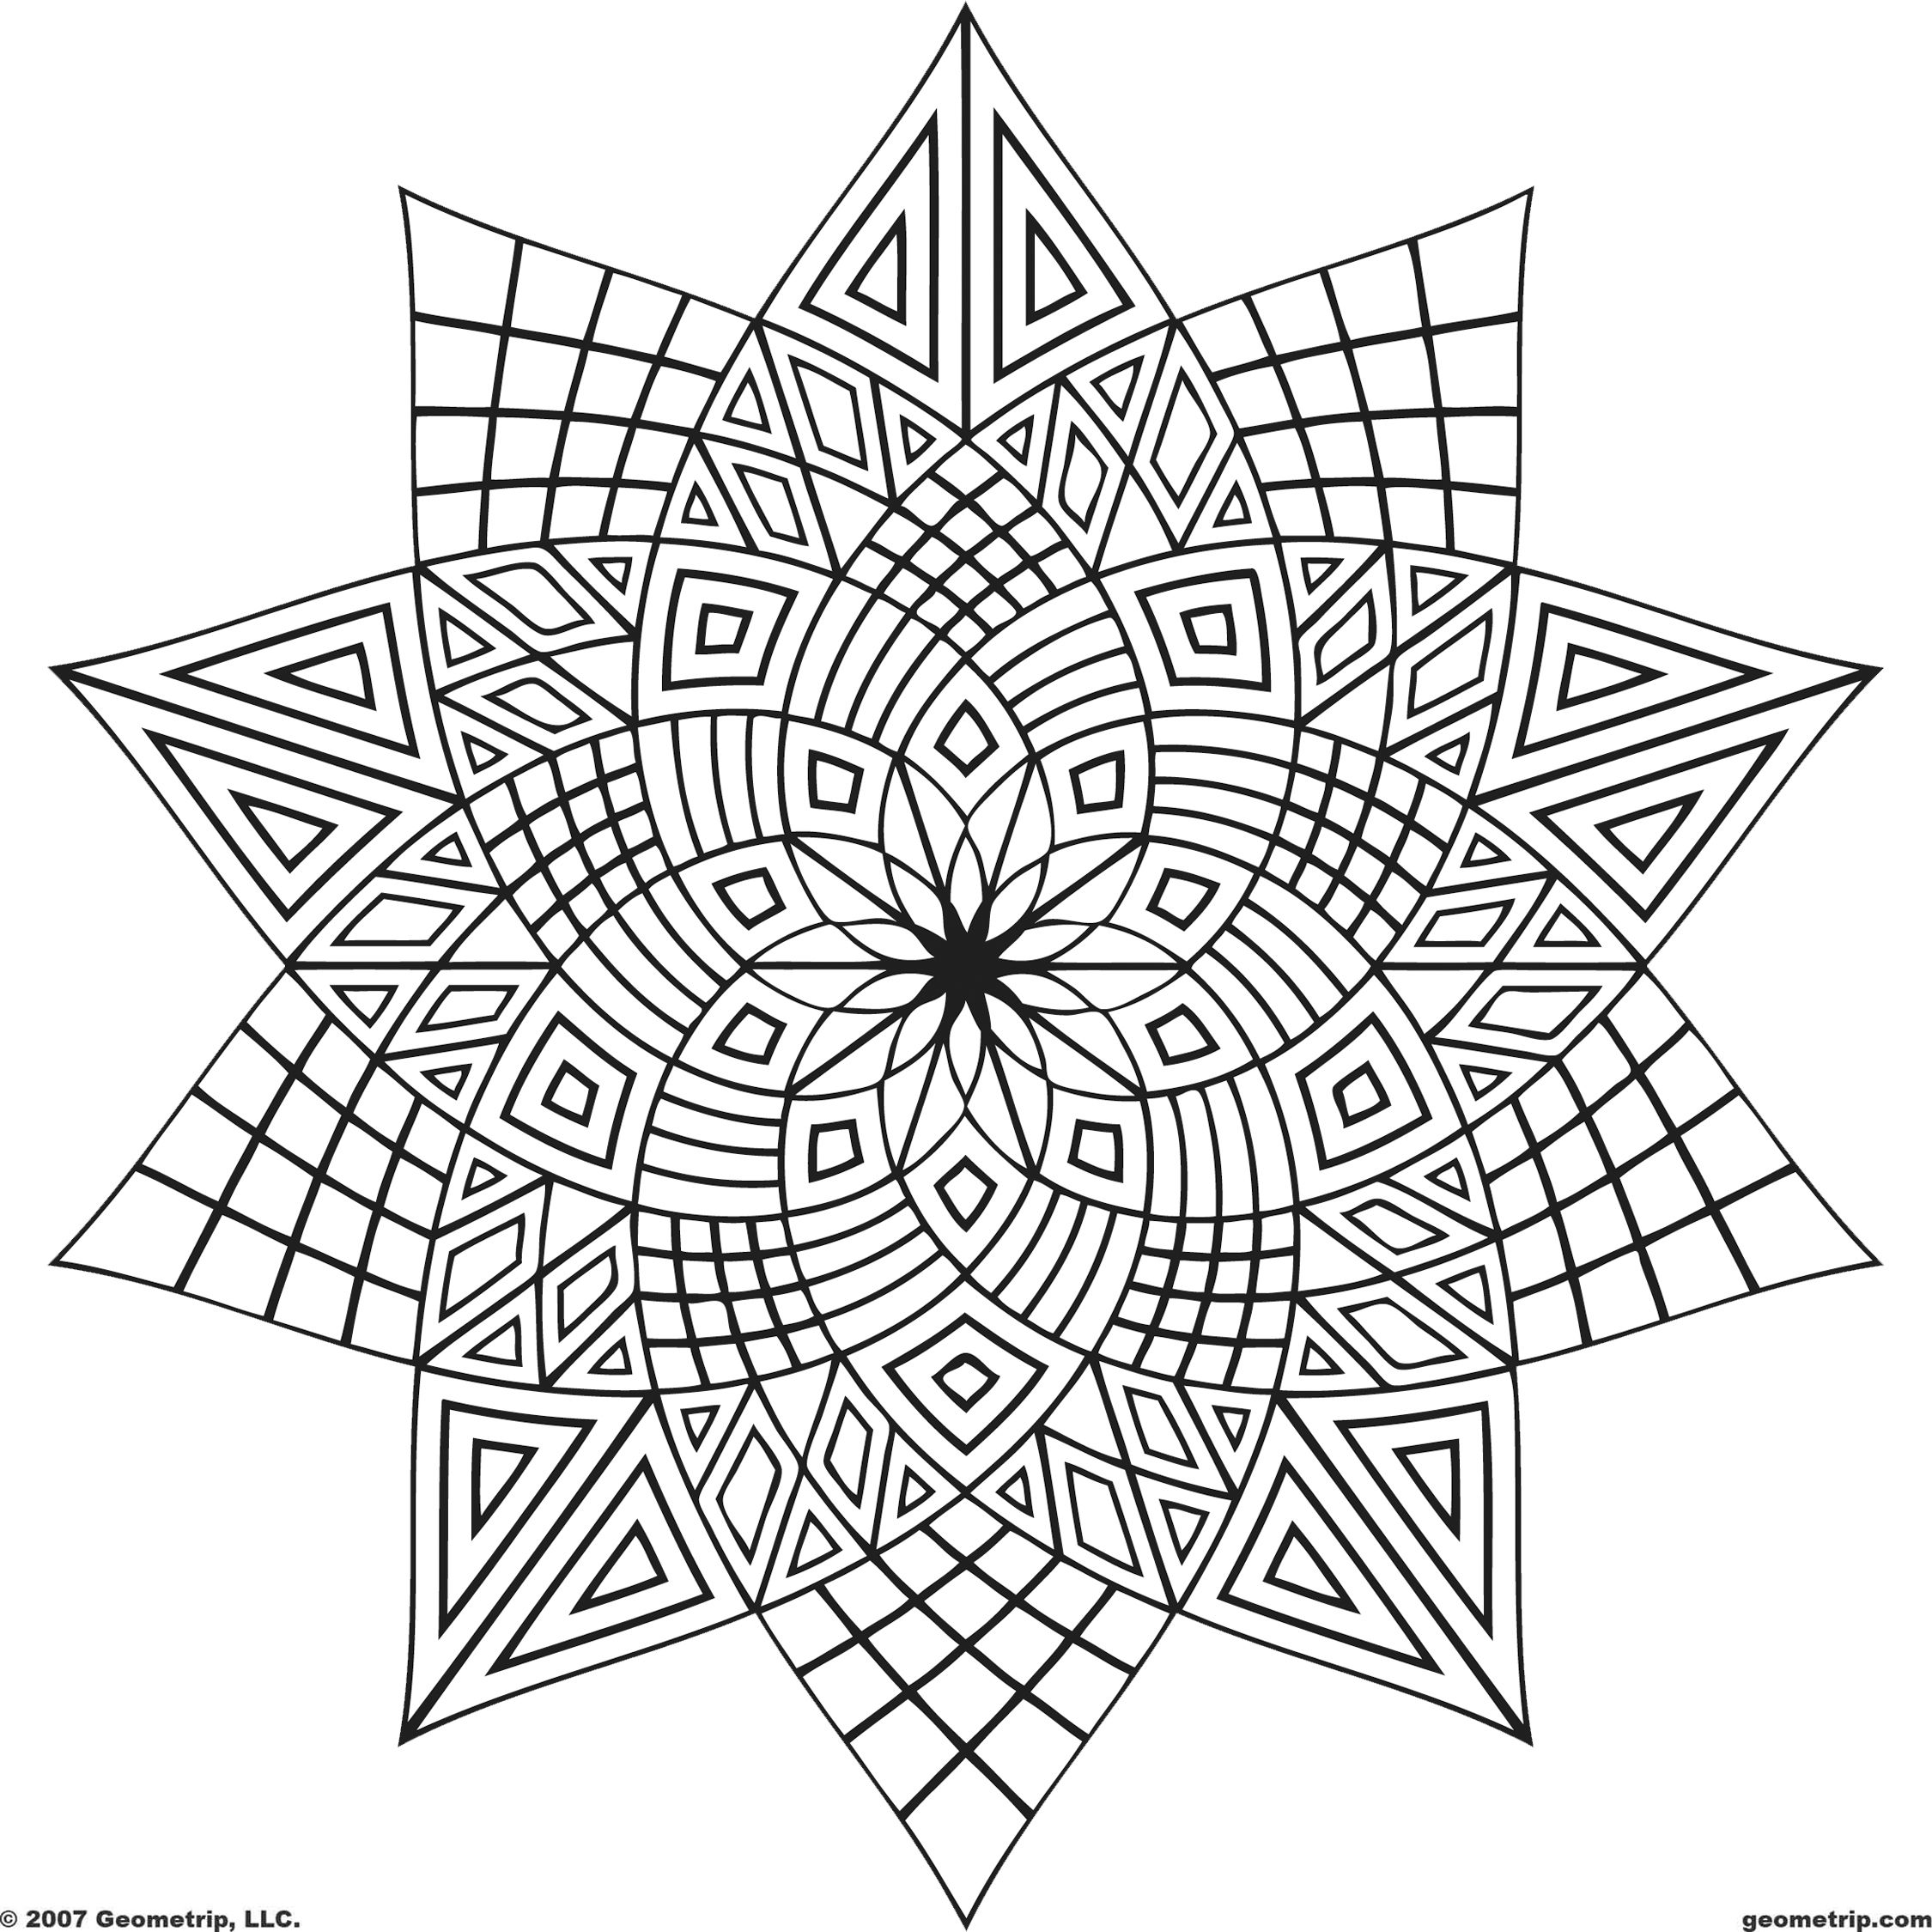 Detailed Coloring Pages For Adults Designs 6 Geometrip Shapes Set1 Img4 Tangled Coloring Pages Geometric Coloring Pages Printable Adult Coloring Pages Free Adult Coloring Pages